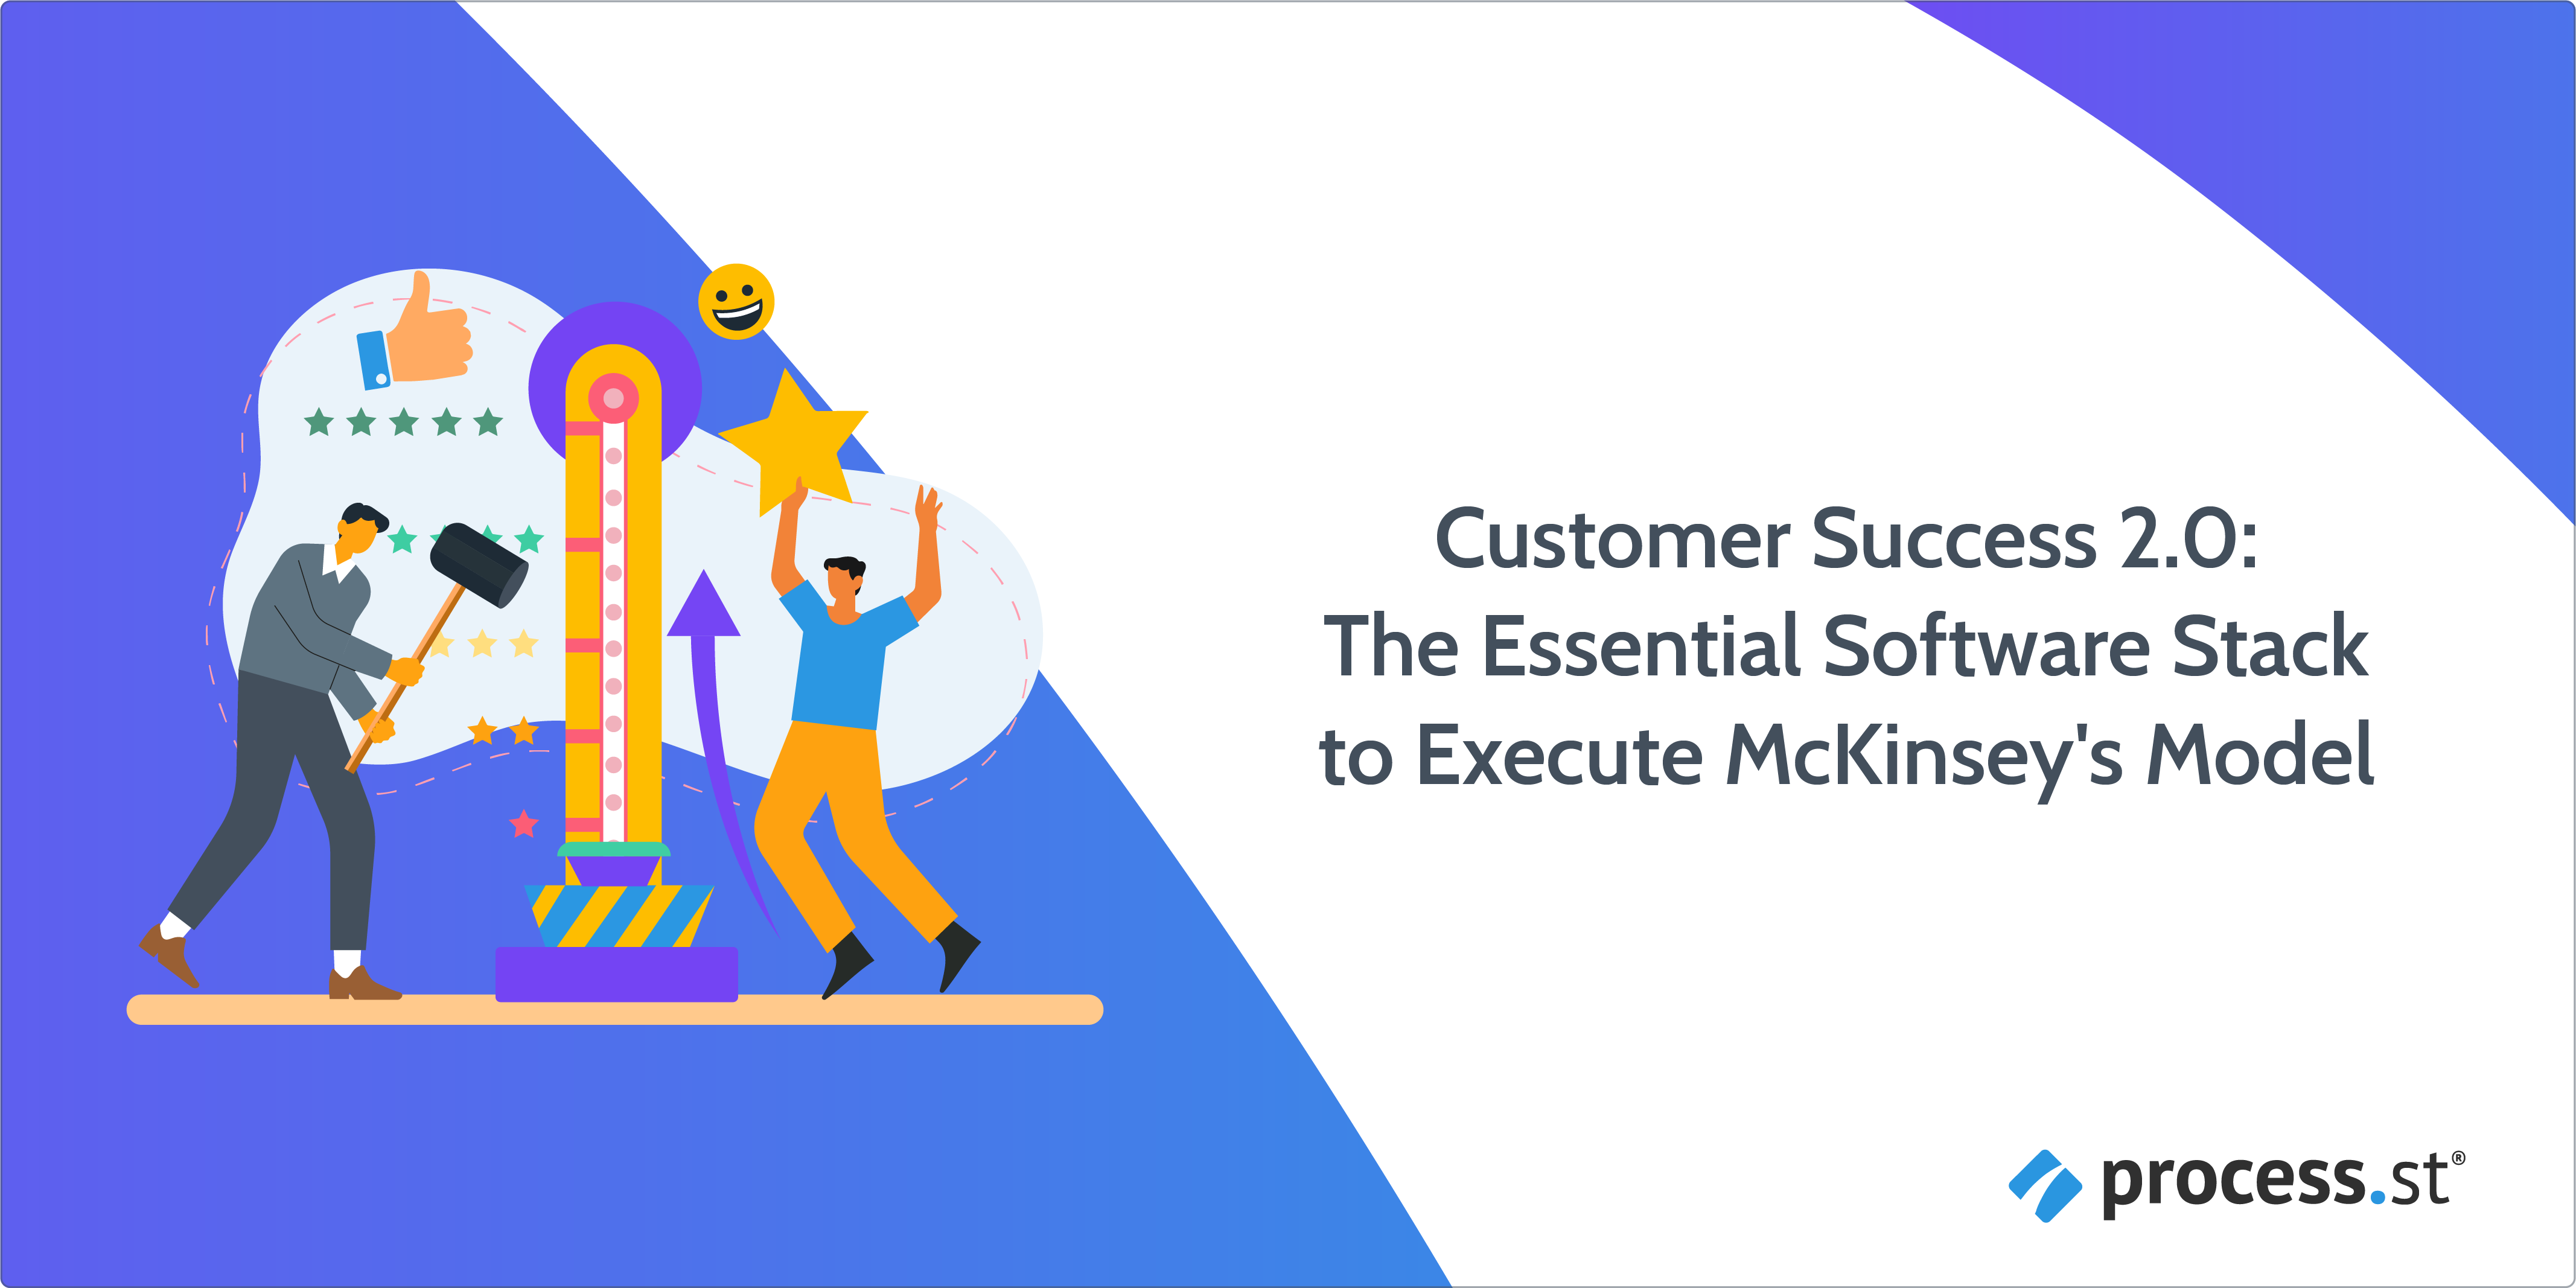 Customer Success 2.0 The Essential Software Stack to Execute McKinsey's Model_-01